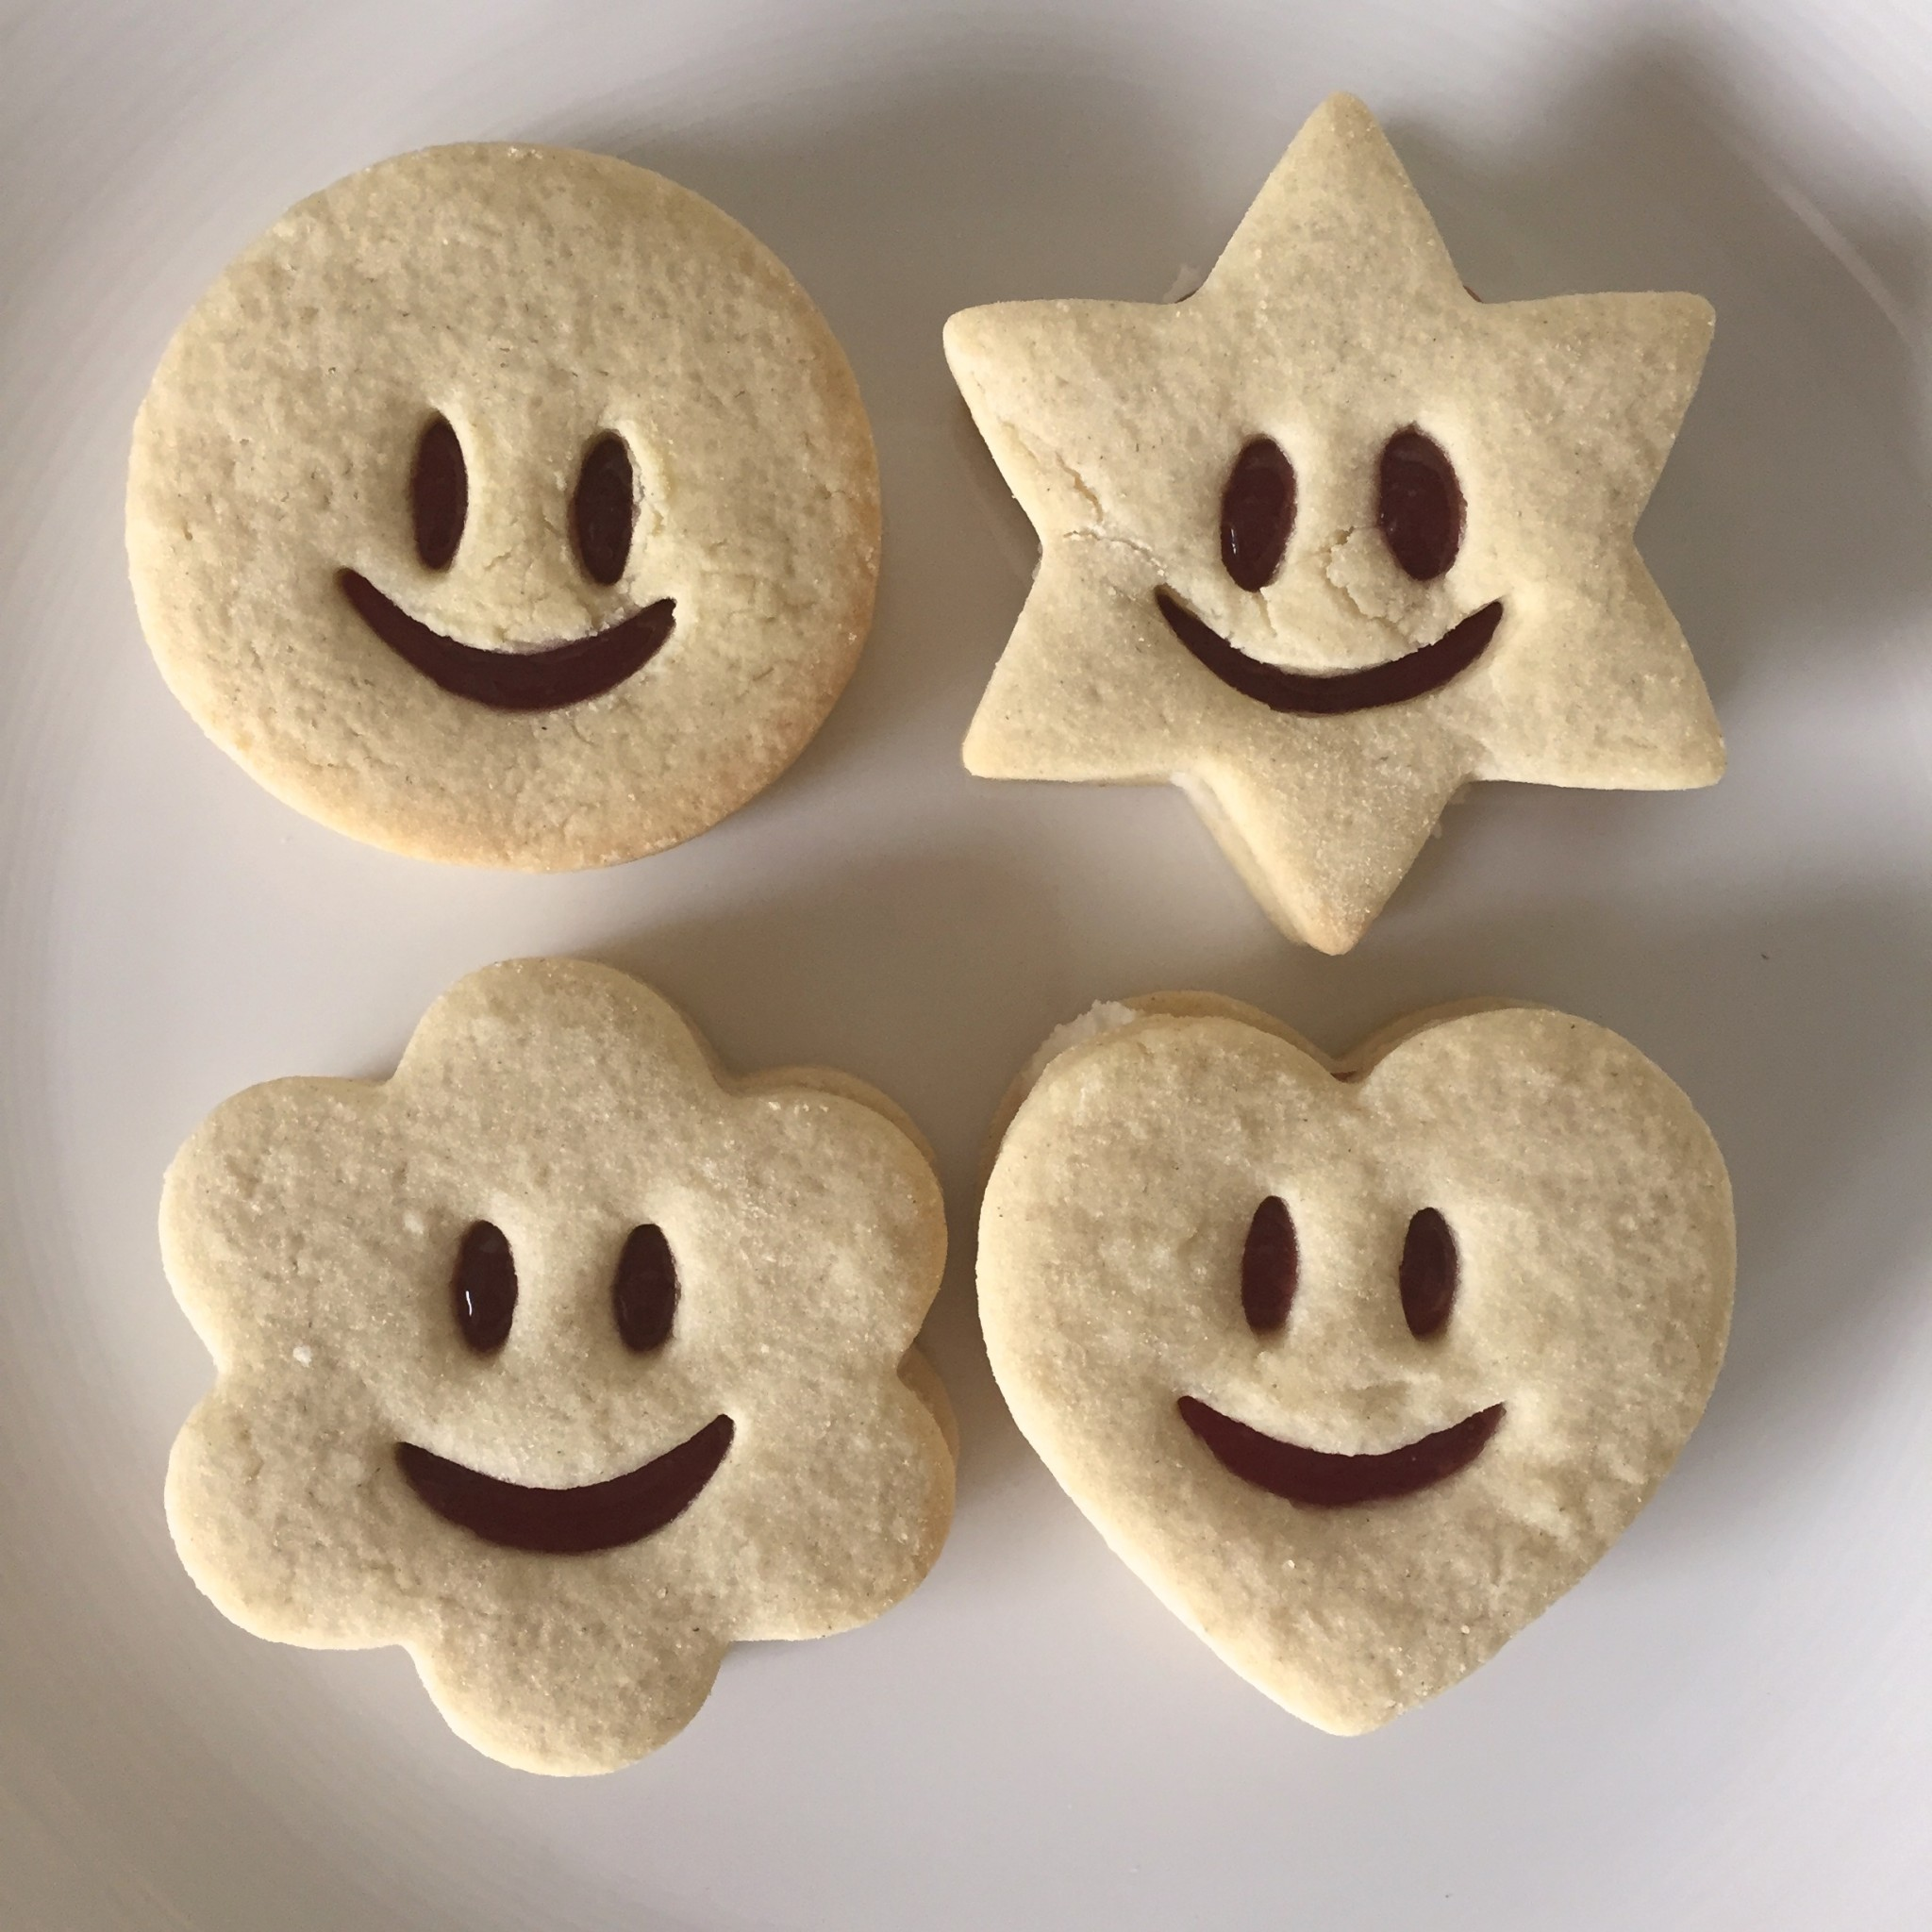 Smiley face biscuits!